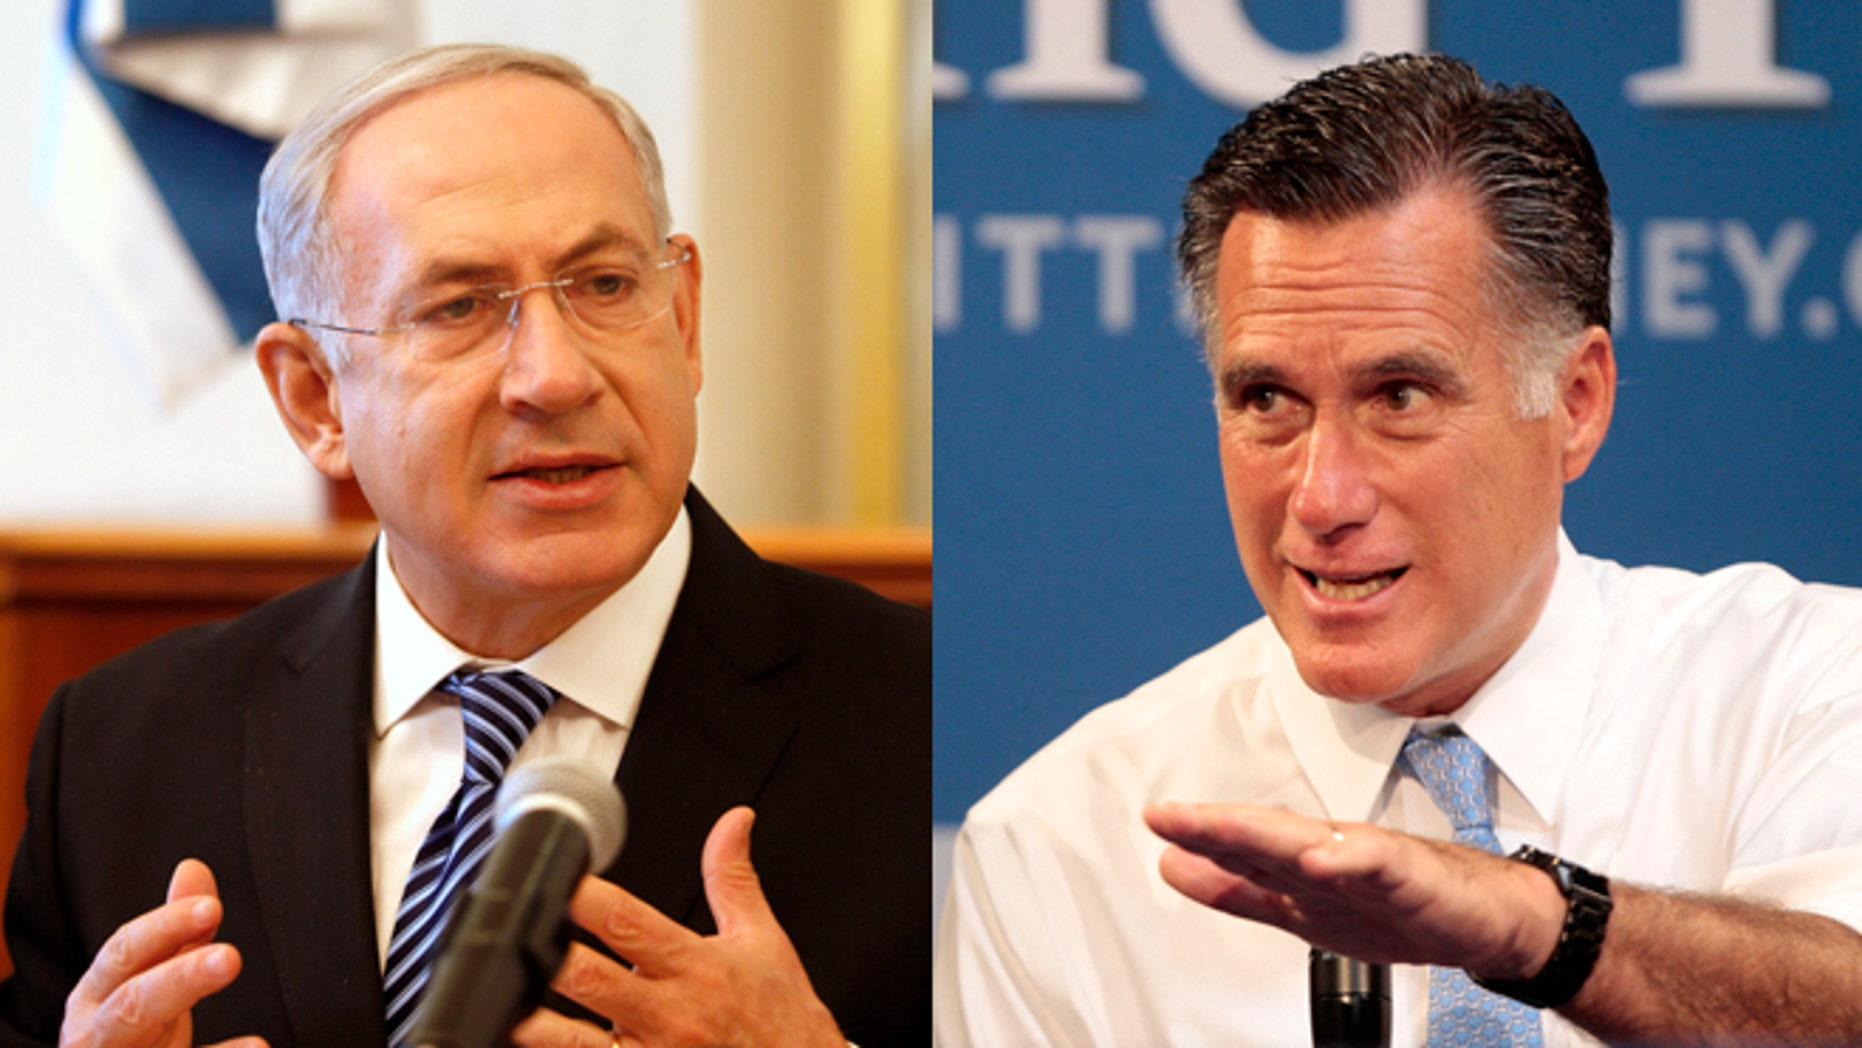 Shown here are Israeli Prime Minister Benjamin Netanyahu, left, and GOP presidential candidate Mitt Romney.